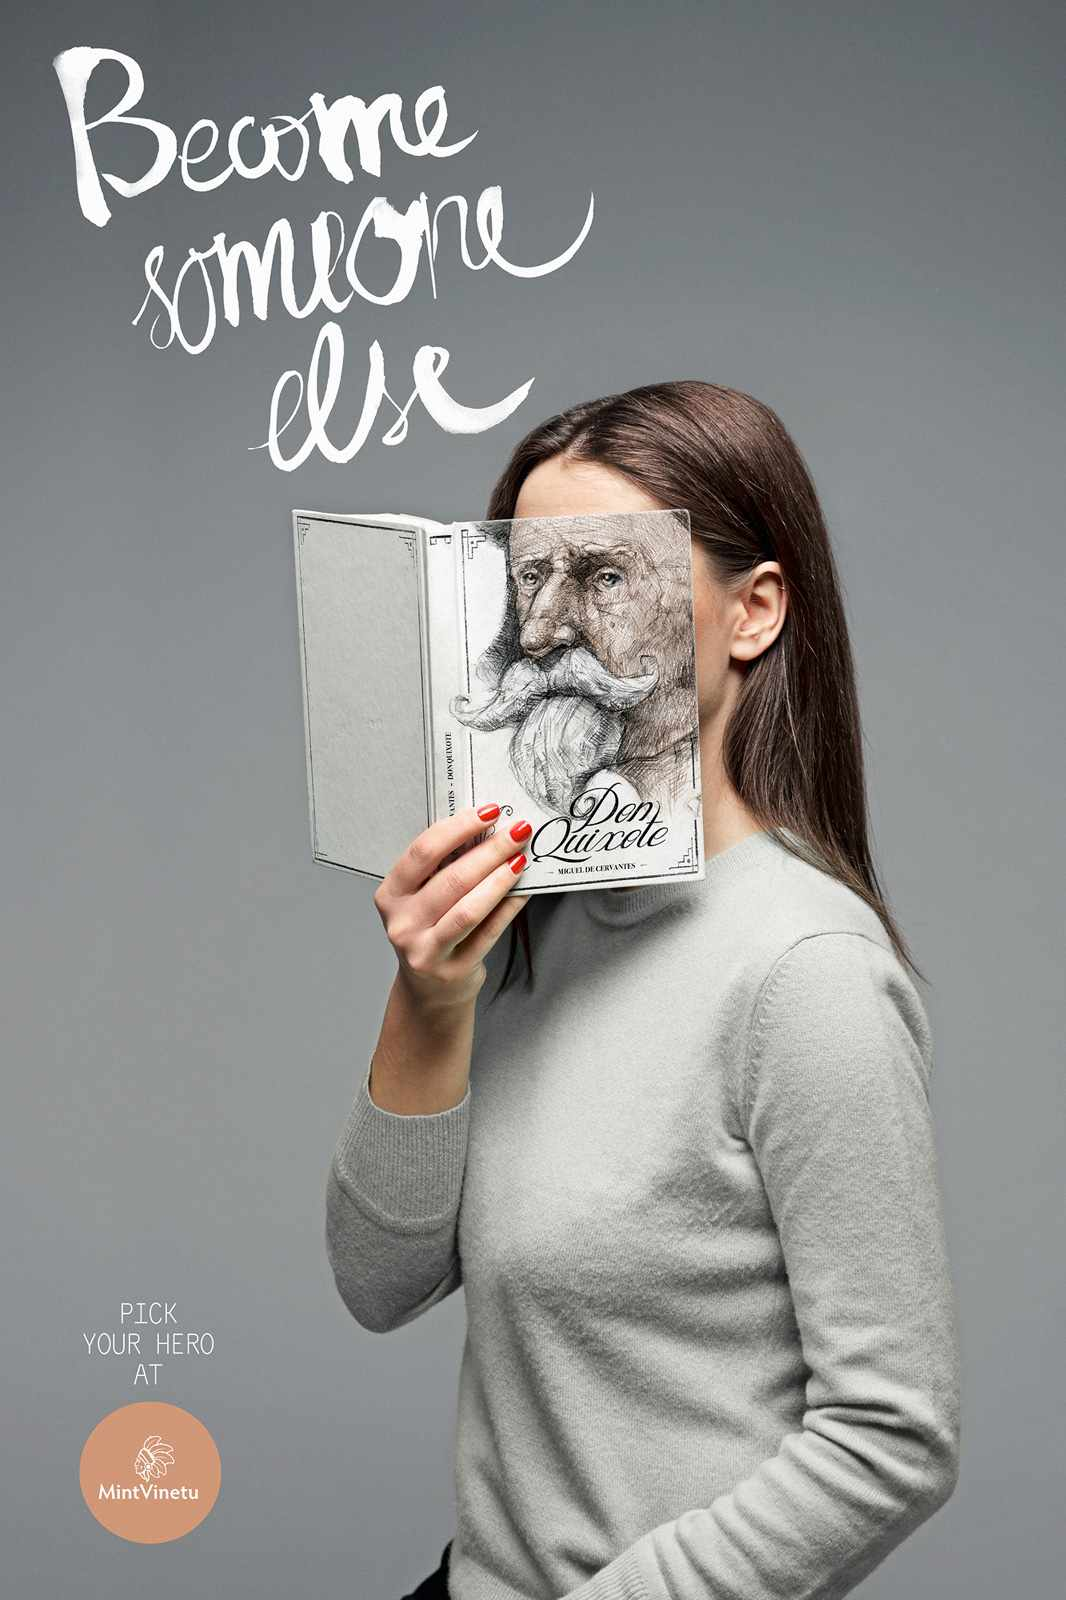 Books make you someone else - ad 2